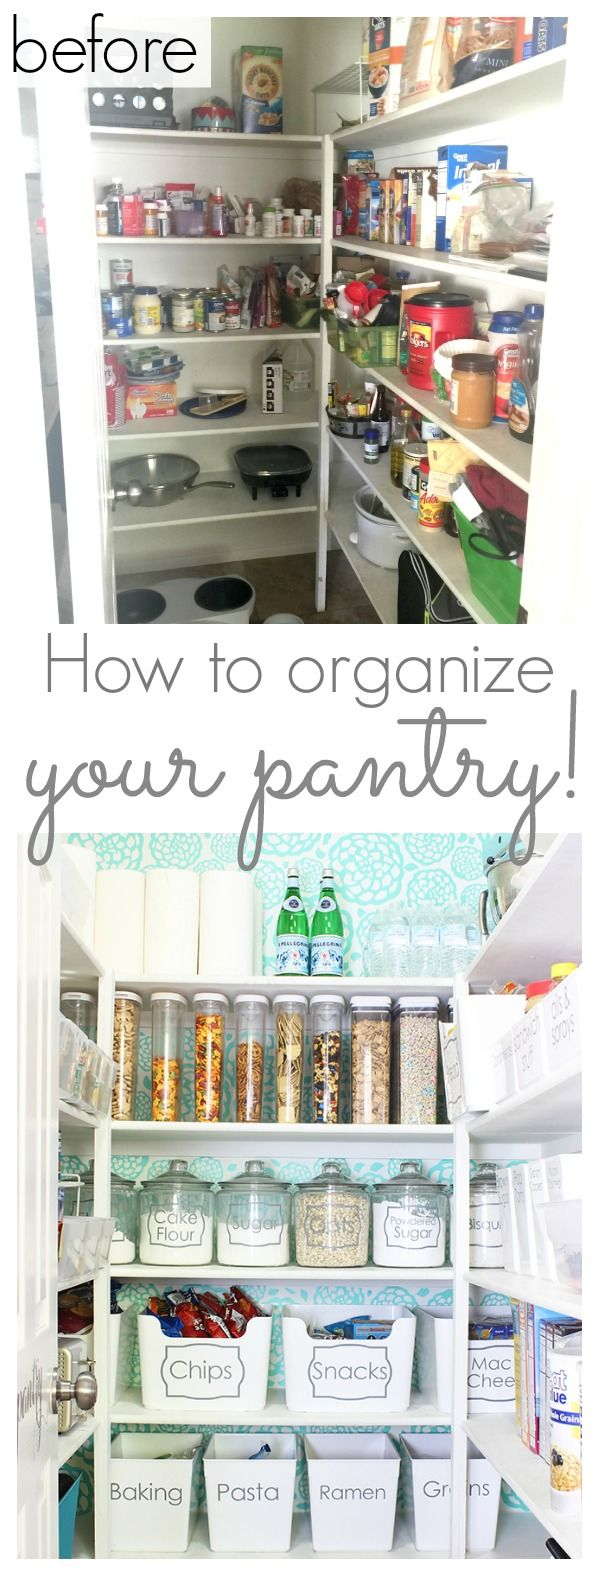 134 best organize :: pantry images on Pinterest | Organization ideas ...